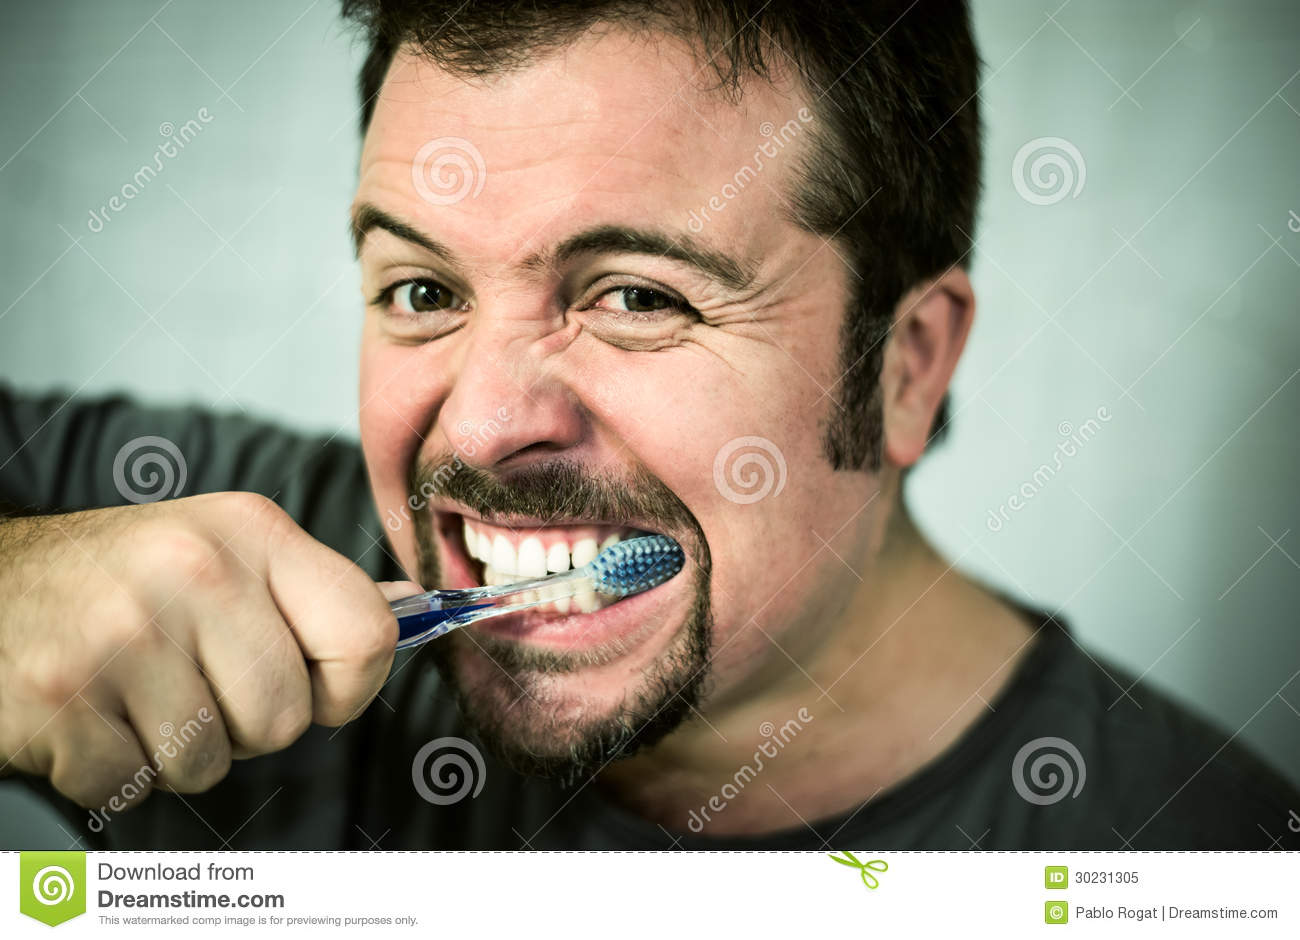 Homme se lavant les dents photo libre de droits image for Devant le miroir